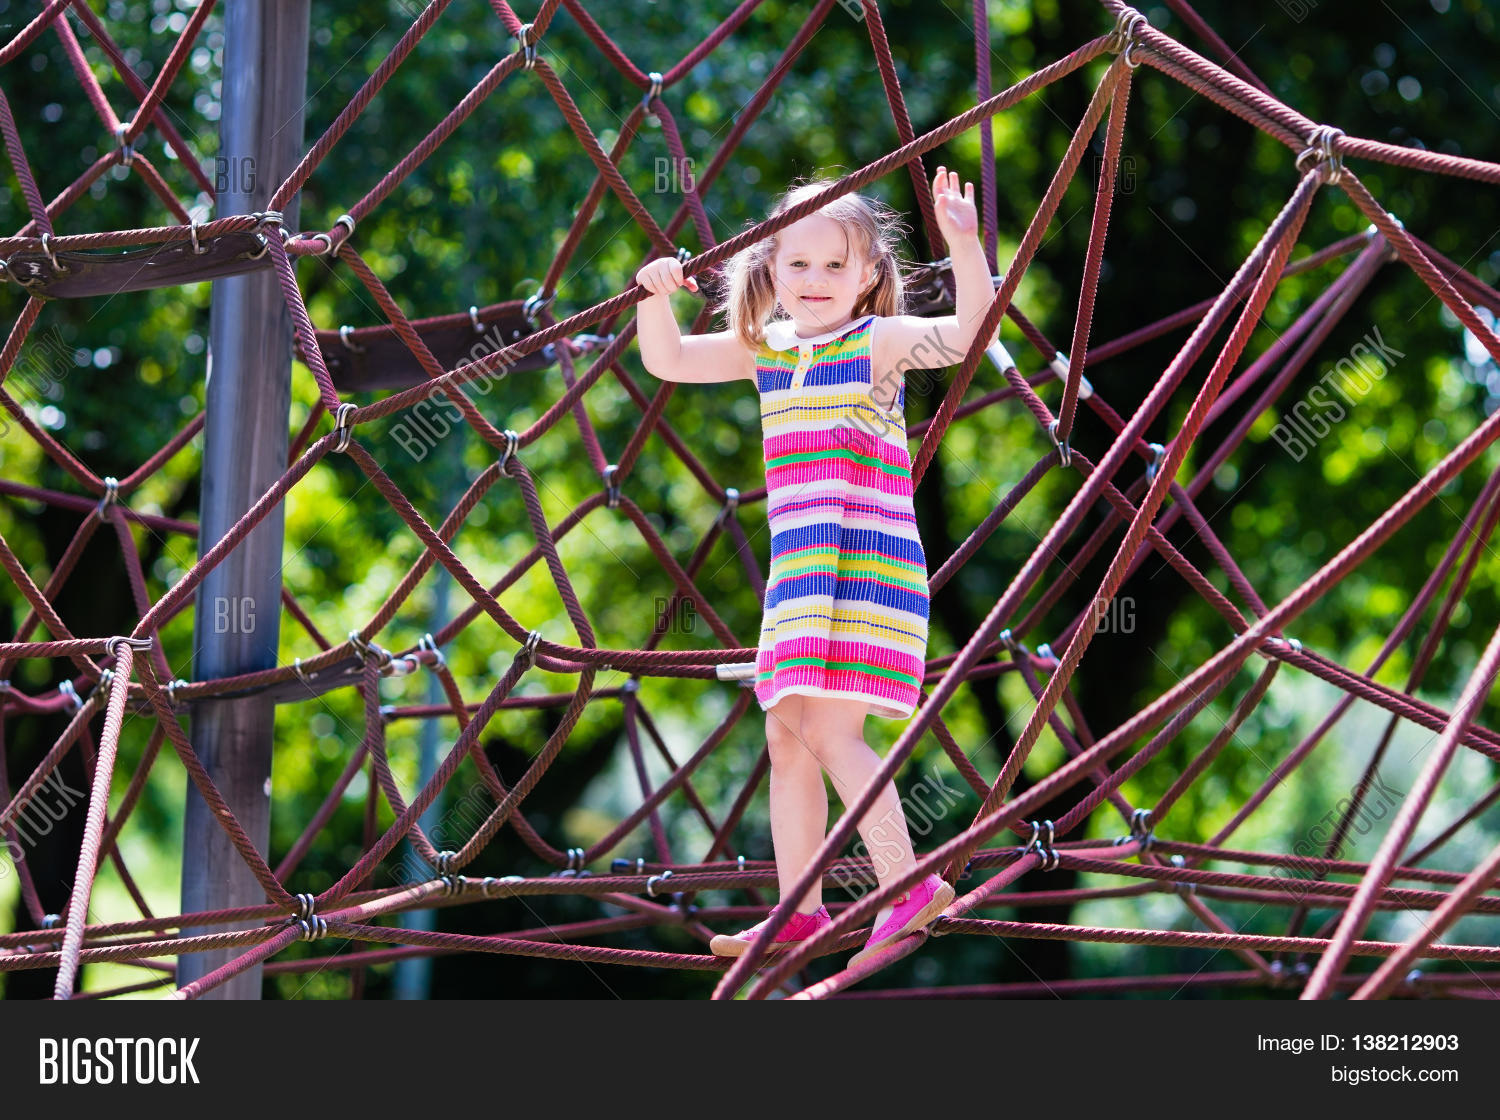 active little child image photo free trial bigstock